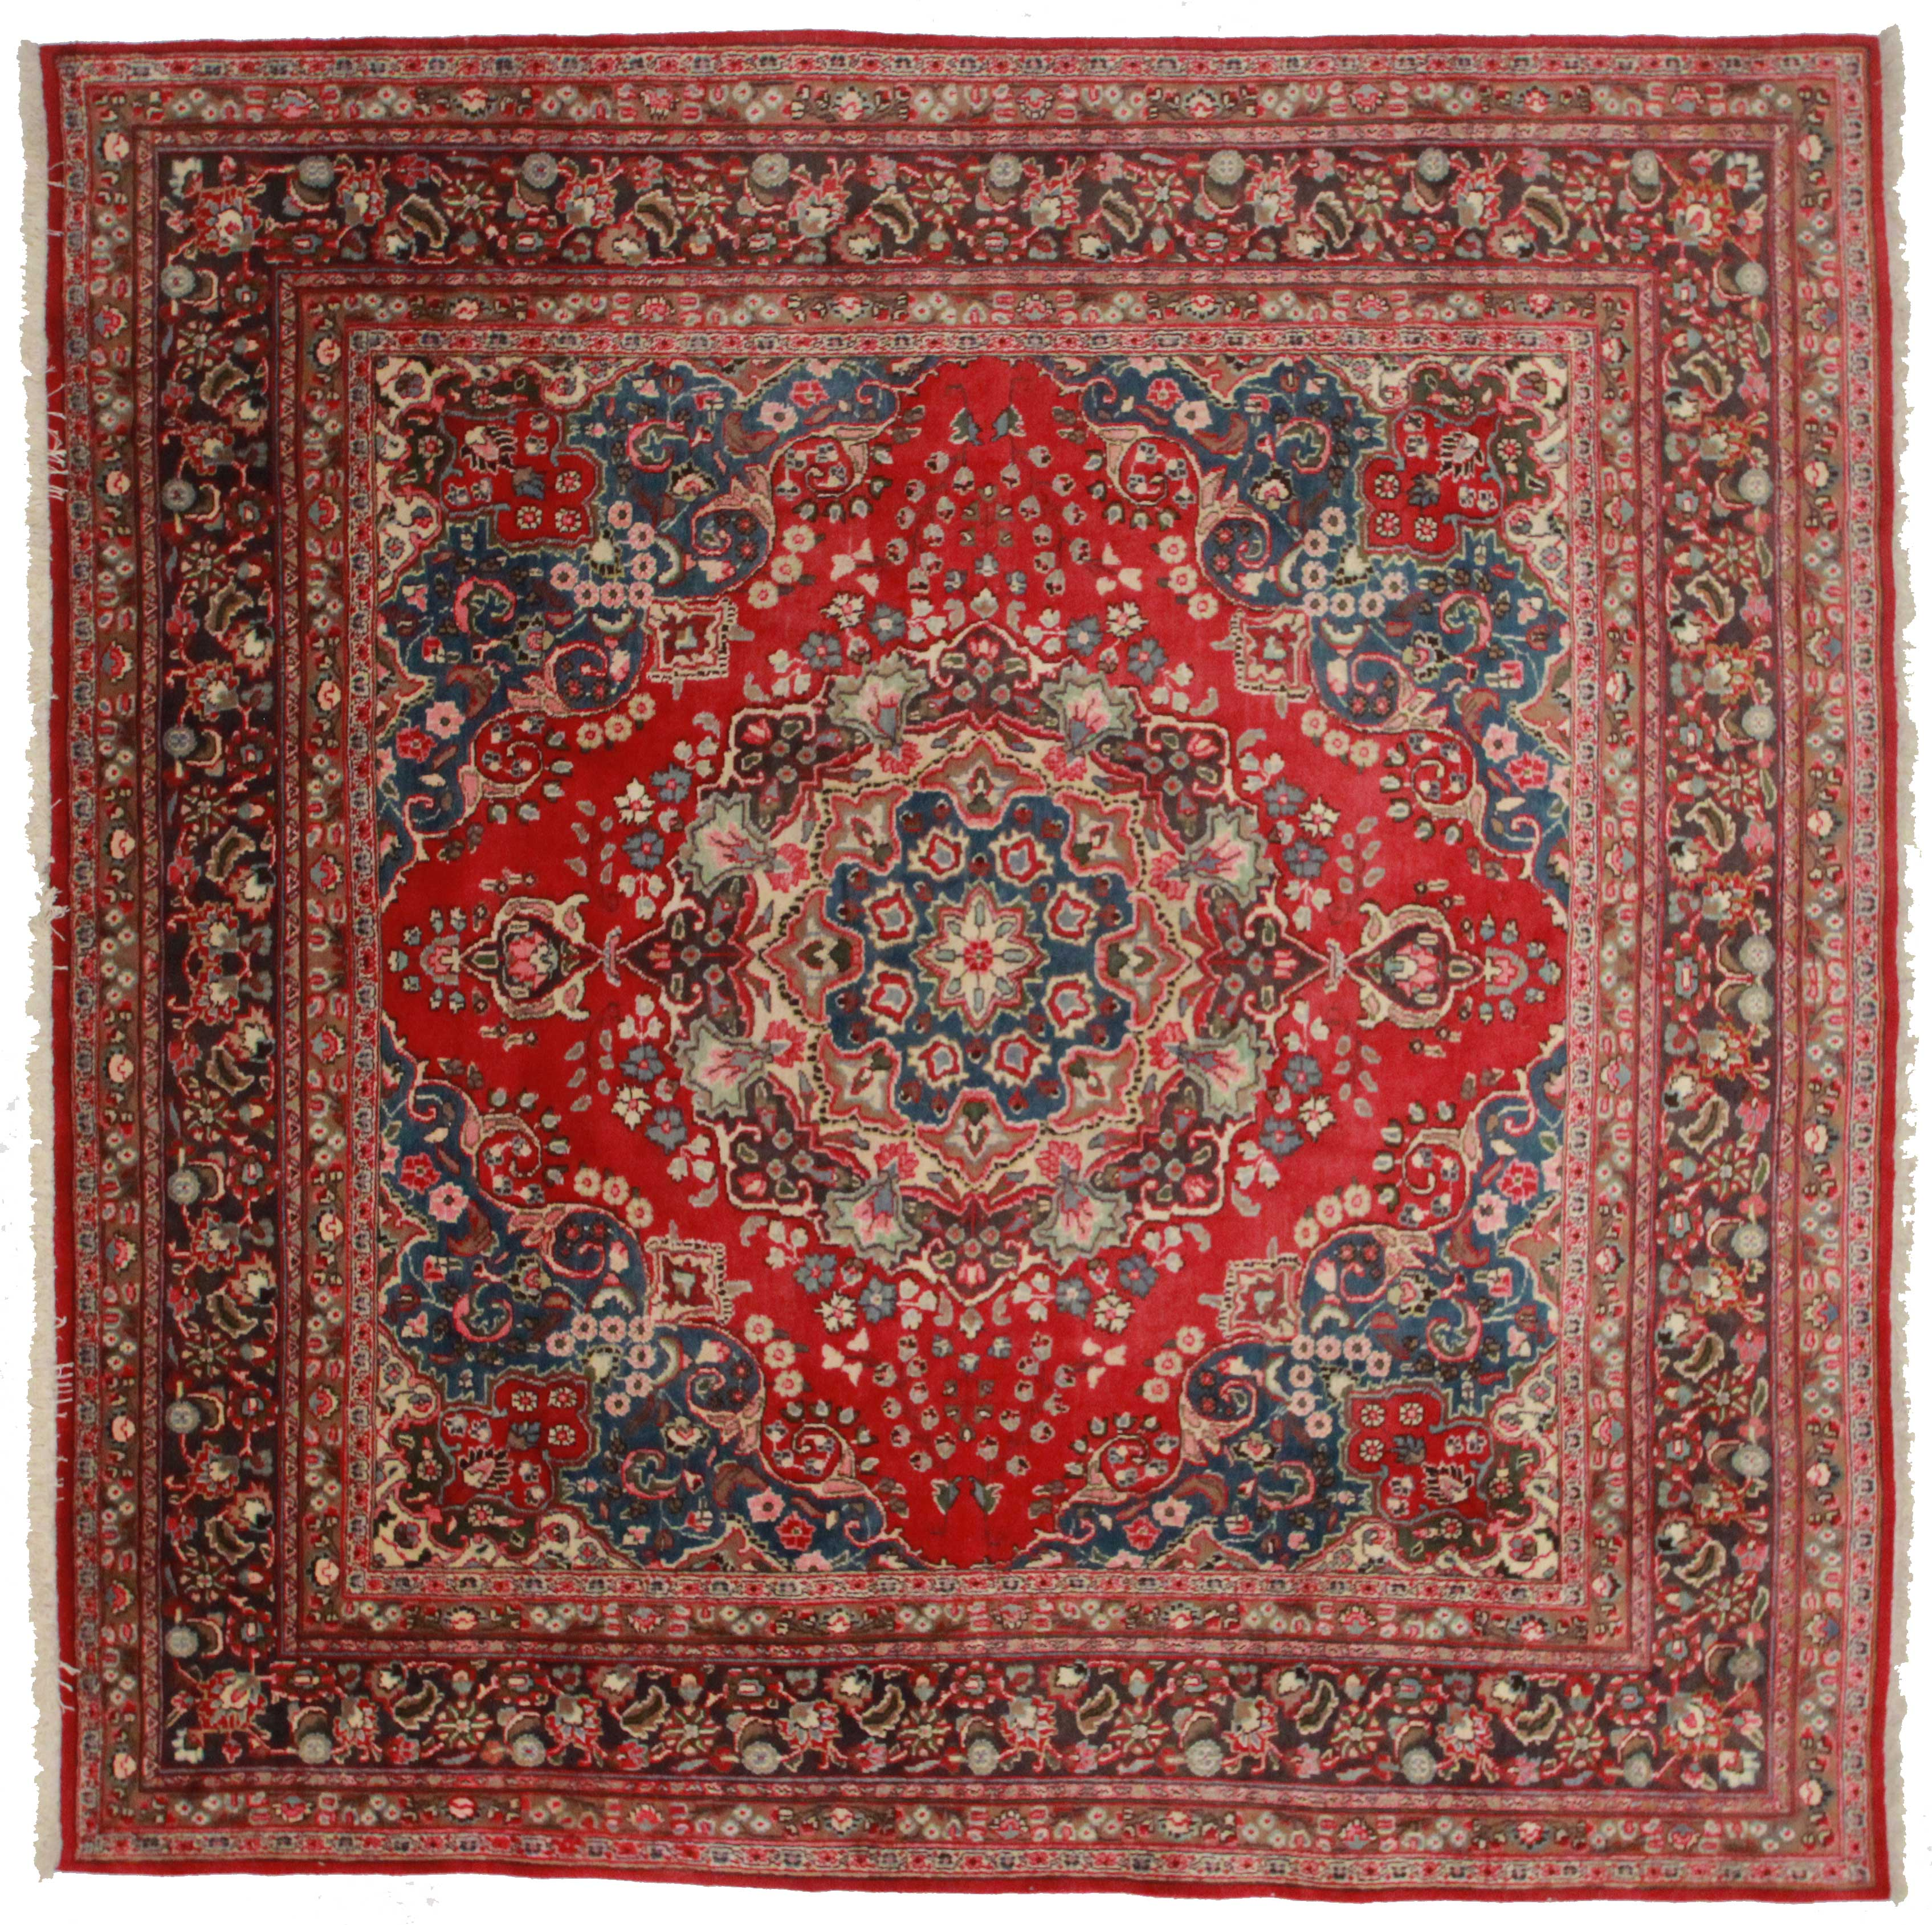 10x10 Square New Oushak Oriental Wool Area Rug: Square Rugs For Sale